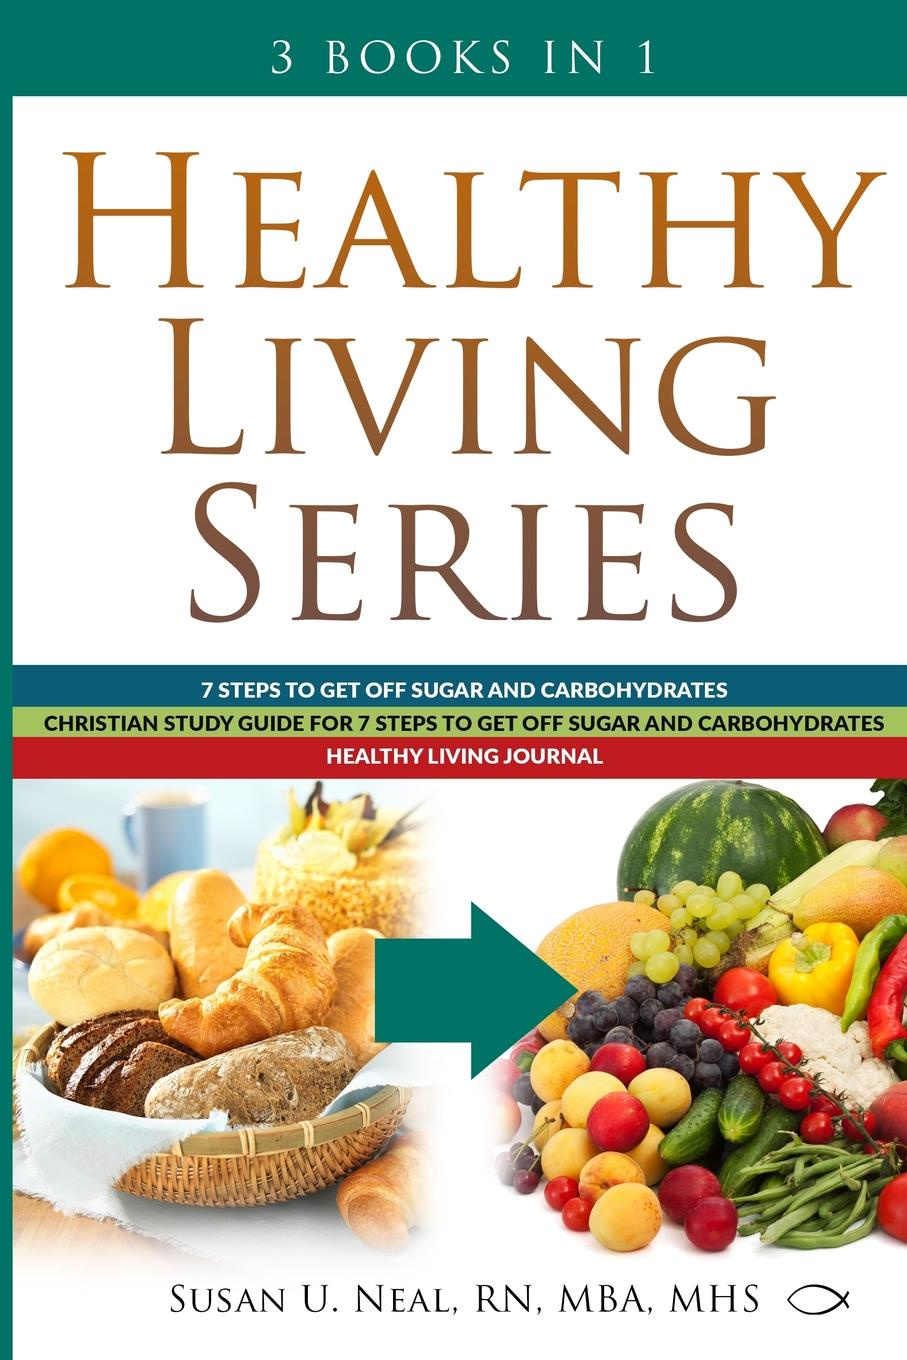 Susan U Neal Healthy Living Series. 3 Books in 1: 7 Steps to Get Off Sugar and Carbohydrates; Christian Study Guide for 7 Steps to Get Off Sugar and Carbohydrates; Healthy Living Journal carbohydrates 14